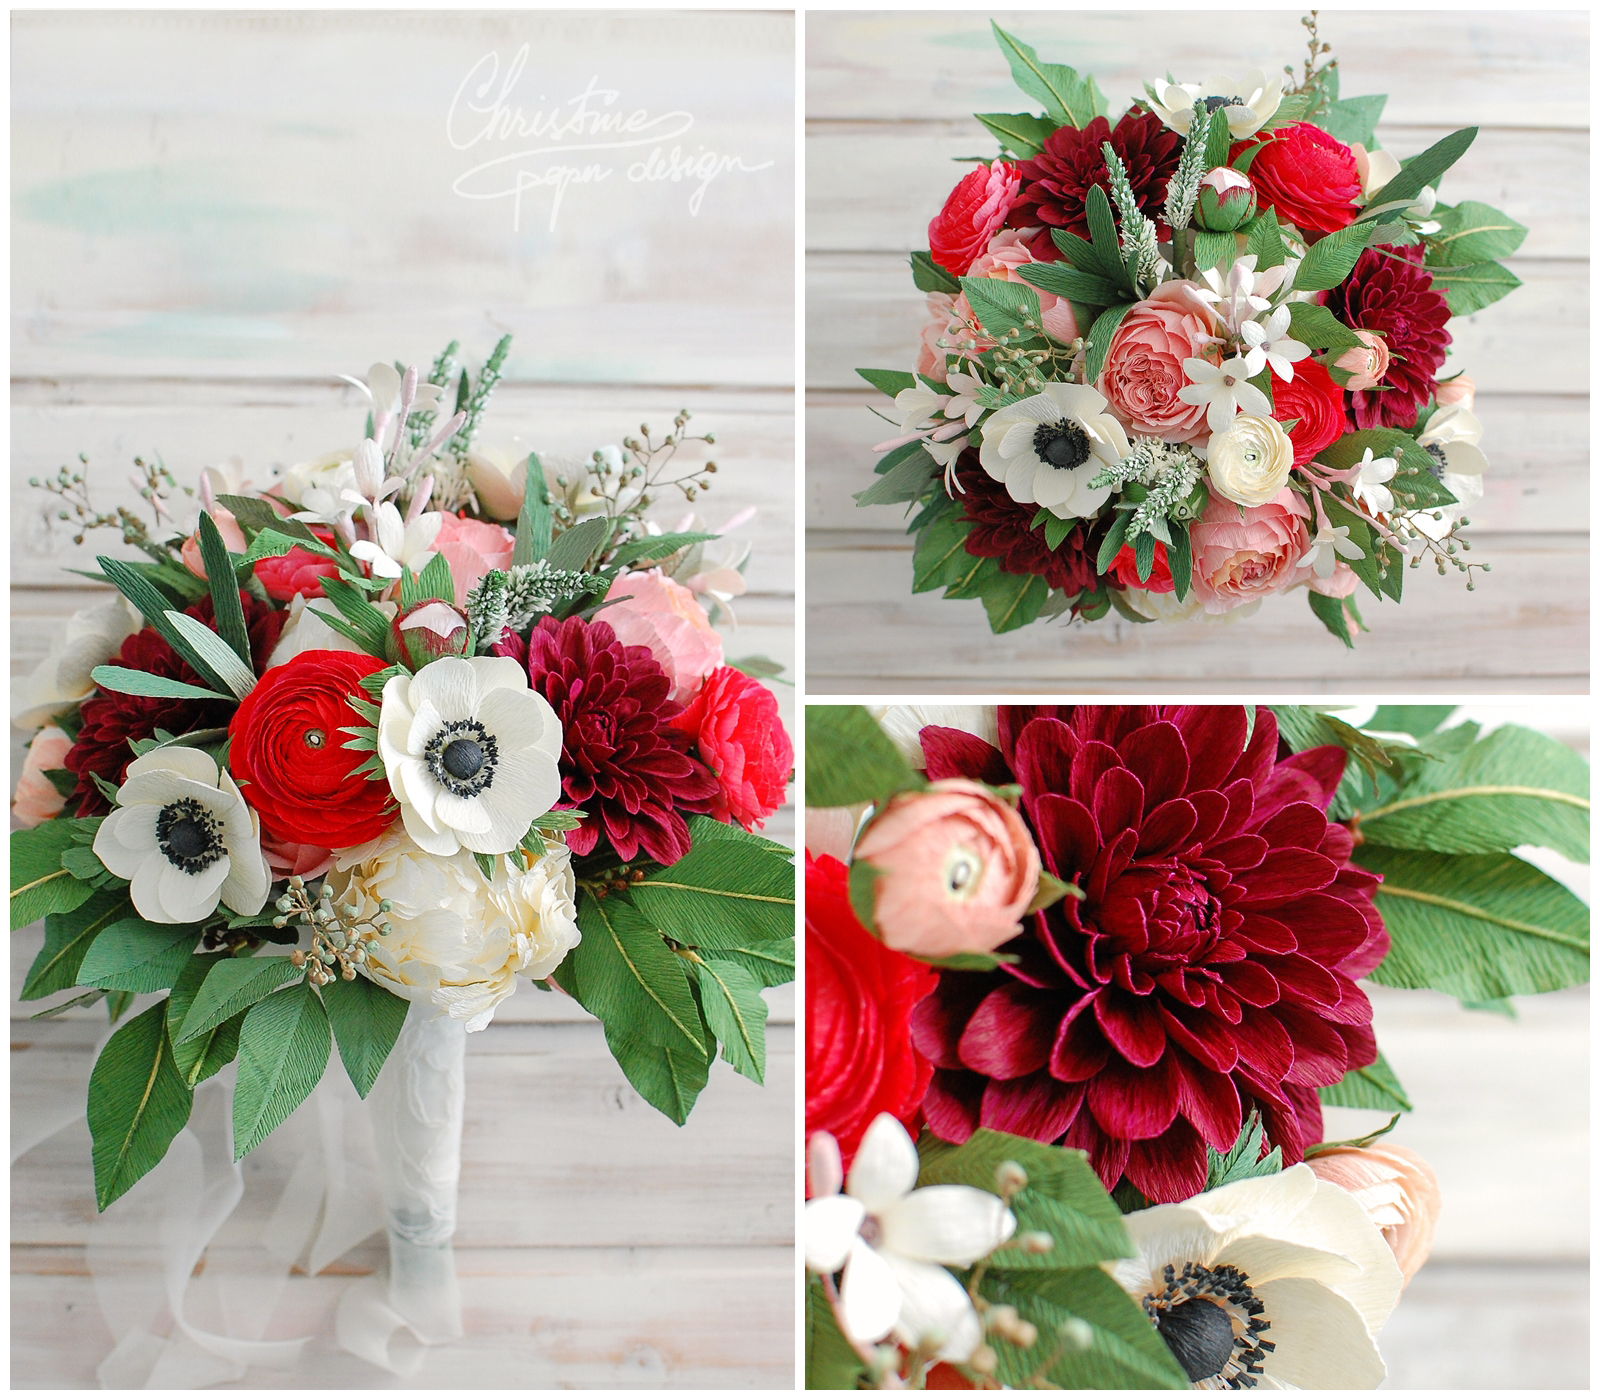 paper bridal bouquets with red - Christine paper design (1)